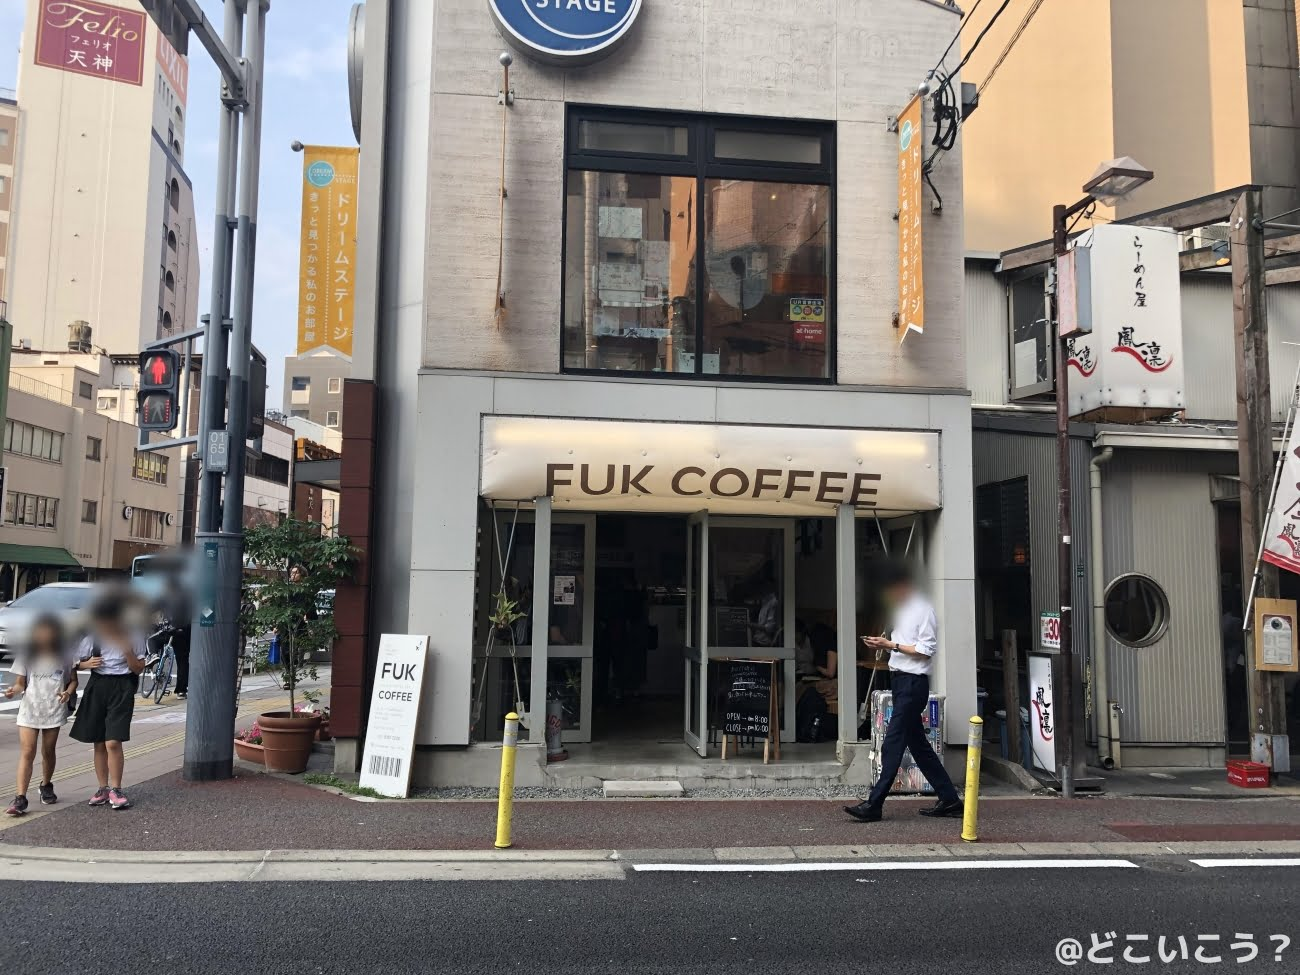 FUK COFFEE